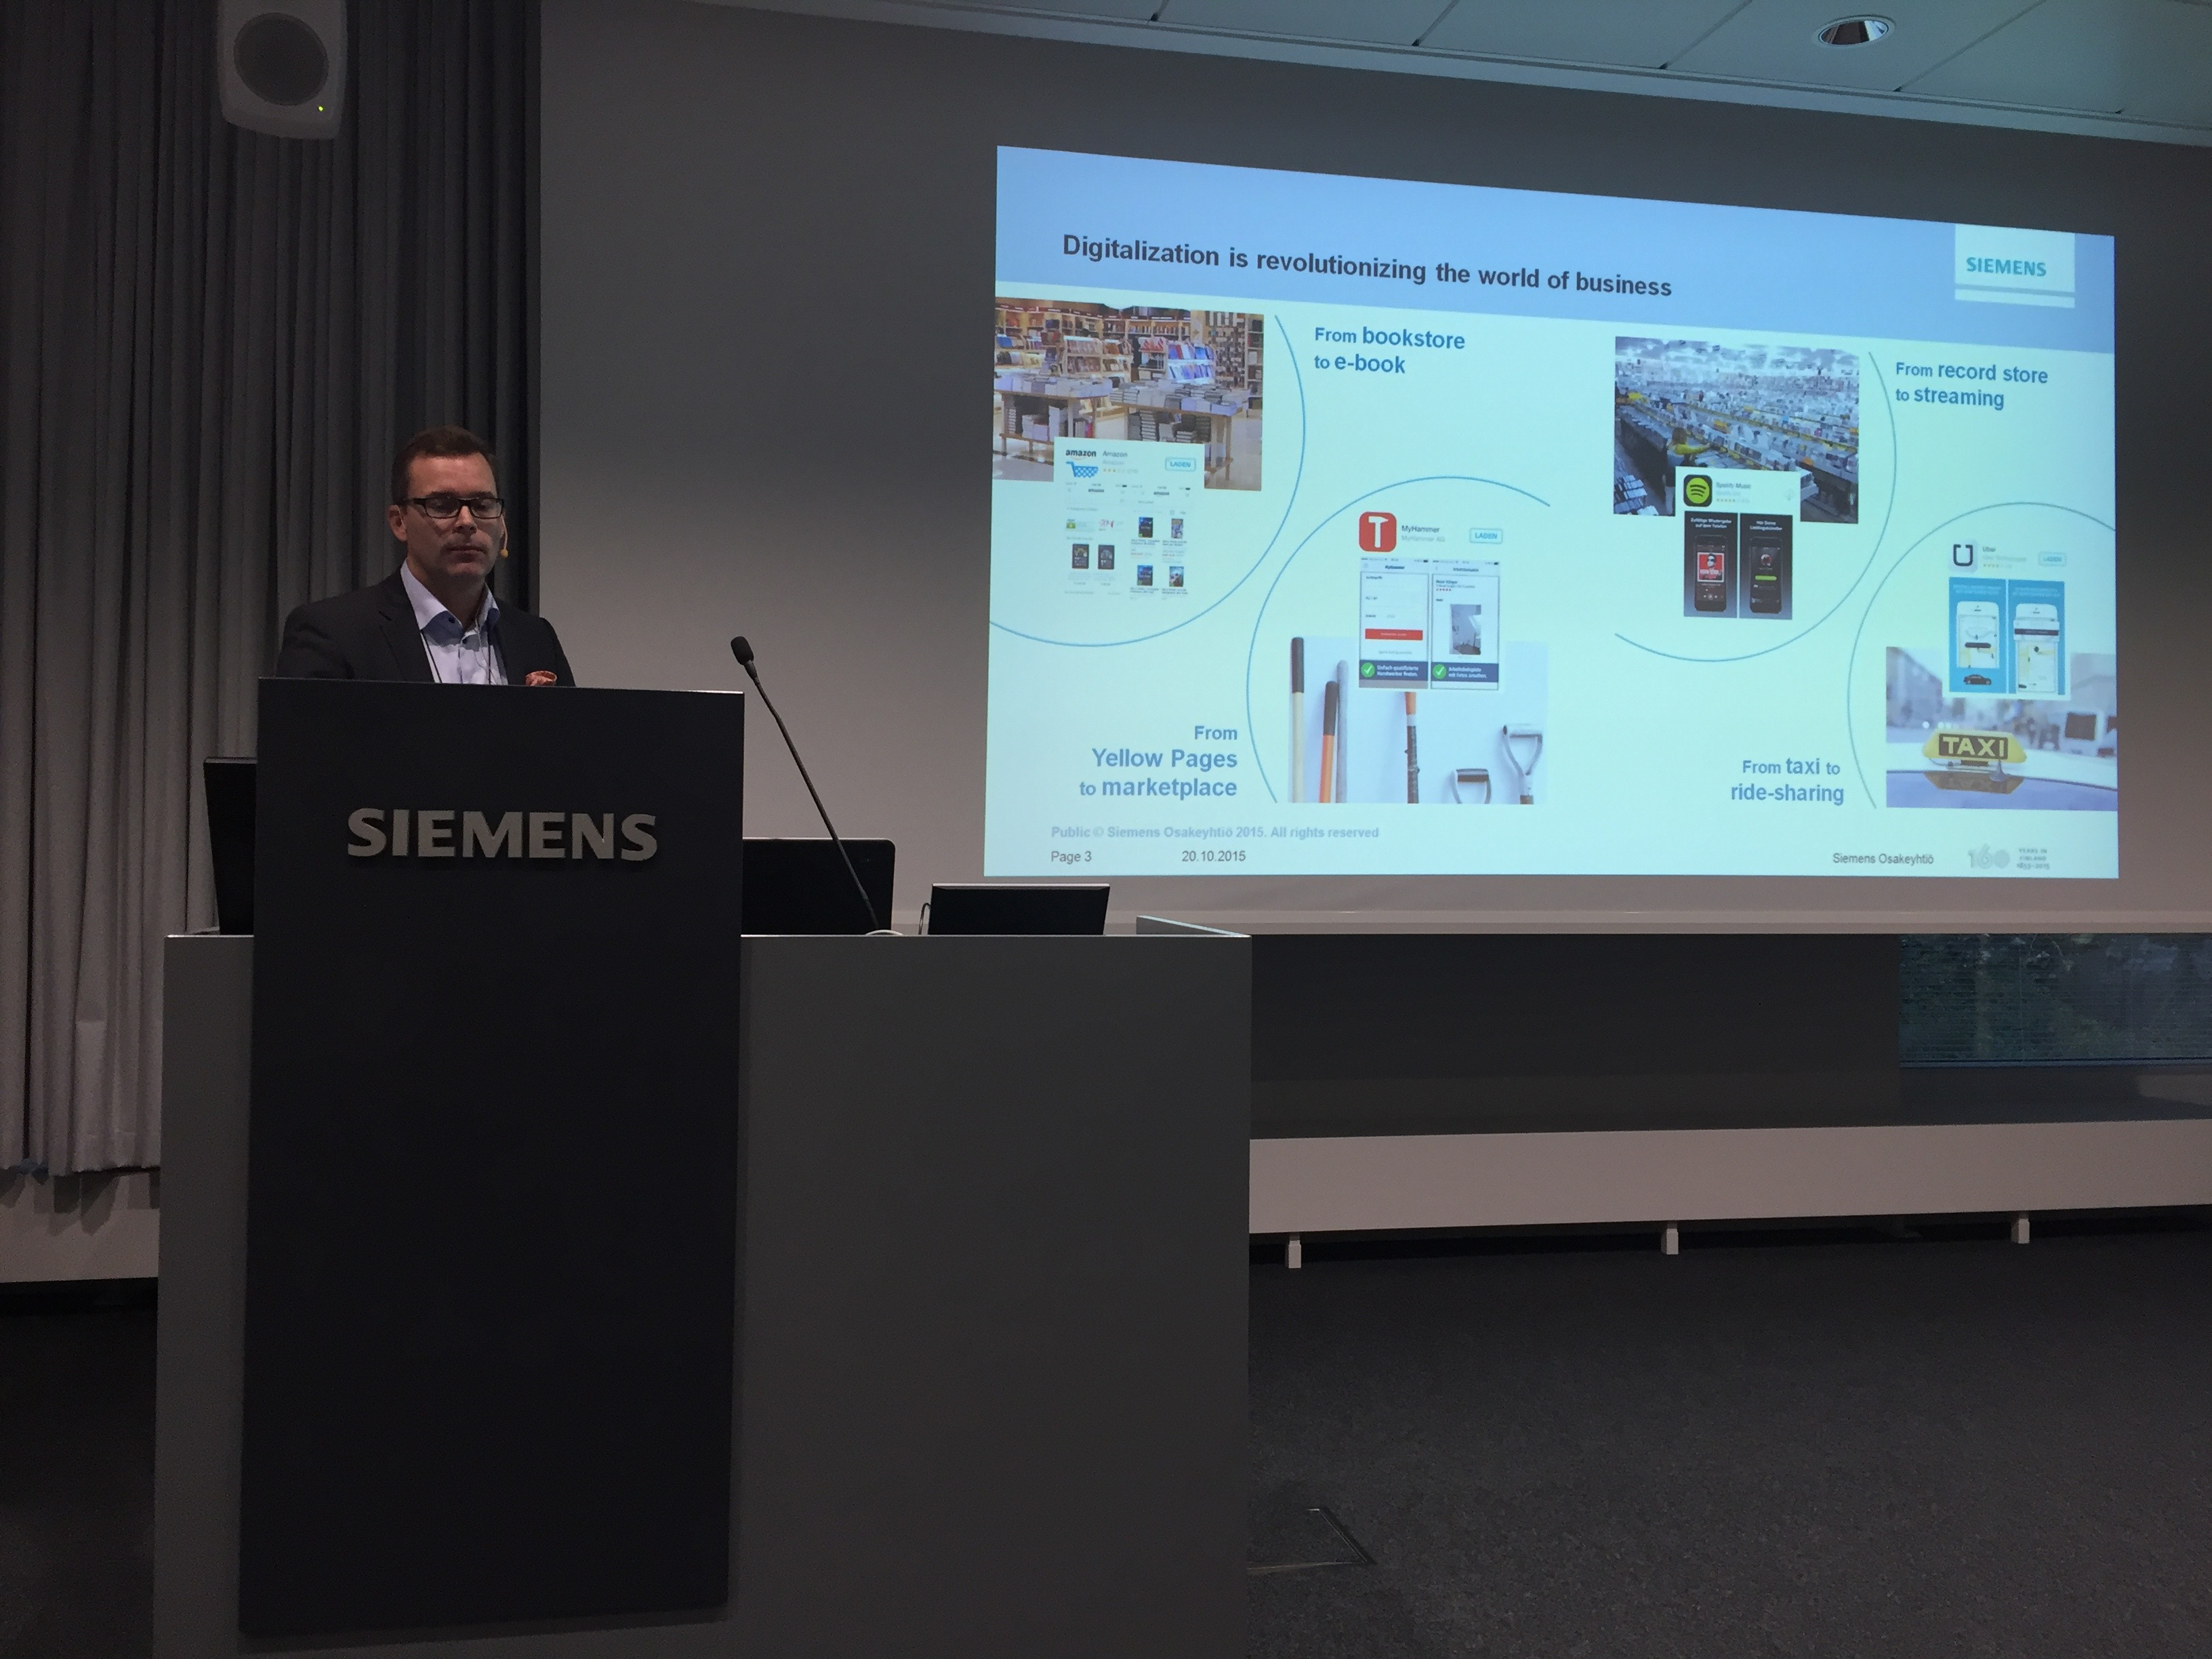 Janne Öhman, Siemens Osakeyhtiö speaking about Industry 4.0